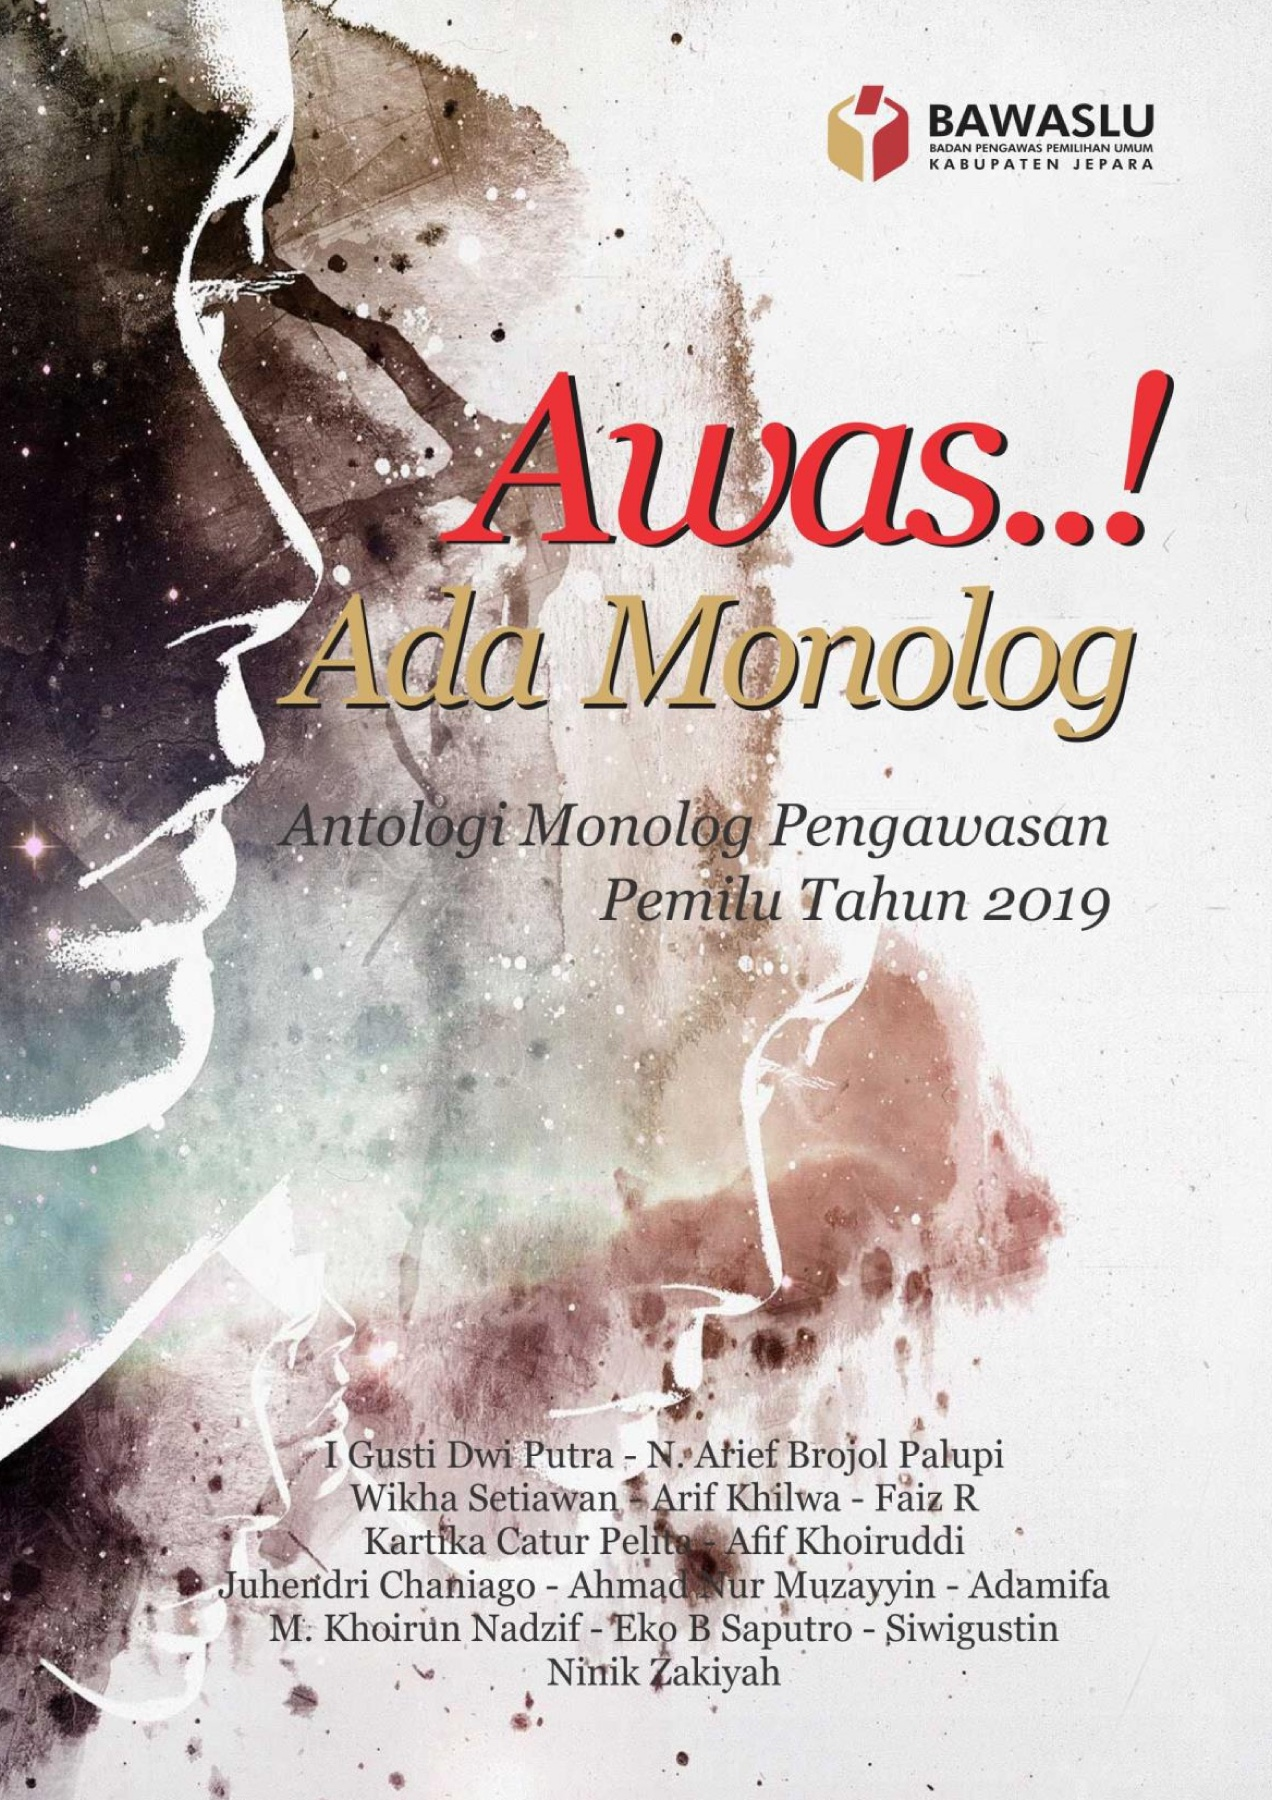 Awas Ada Monolog Pages 101 132 Text Version